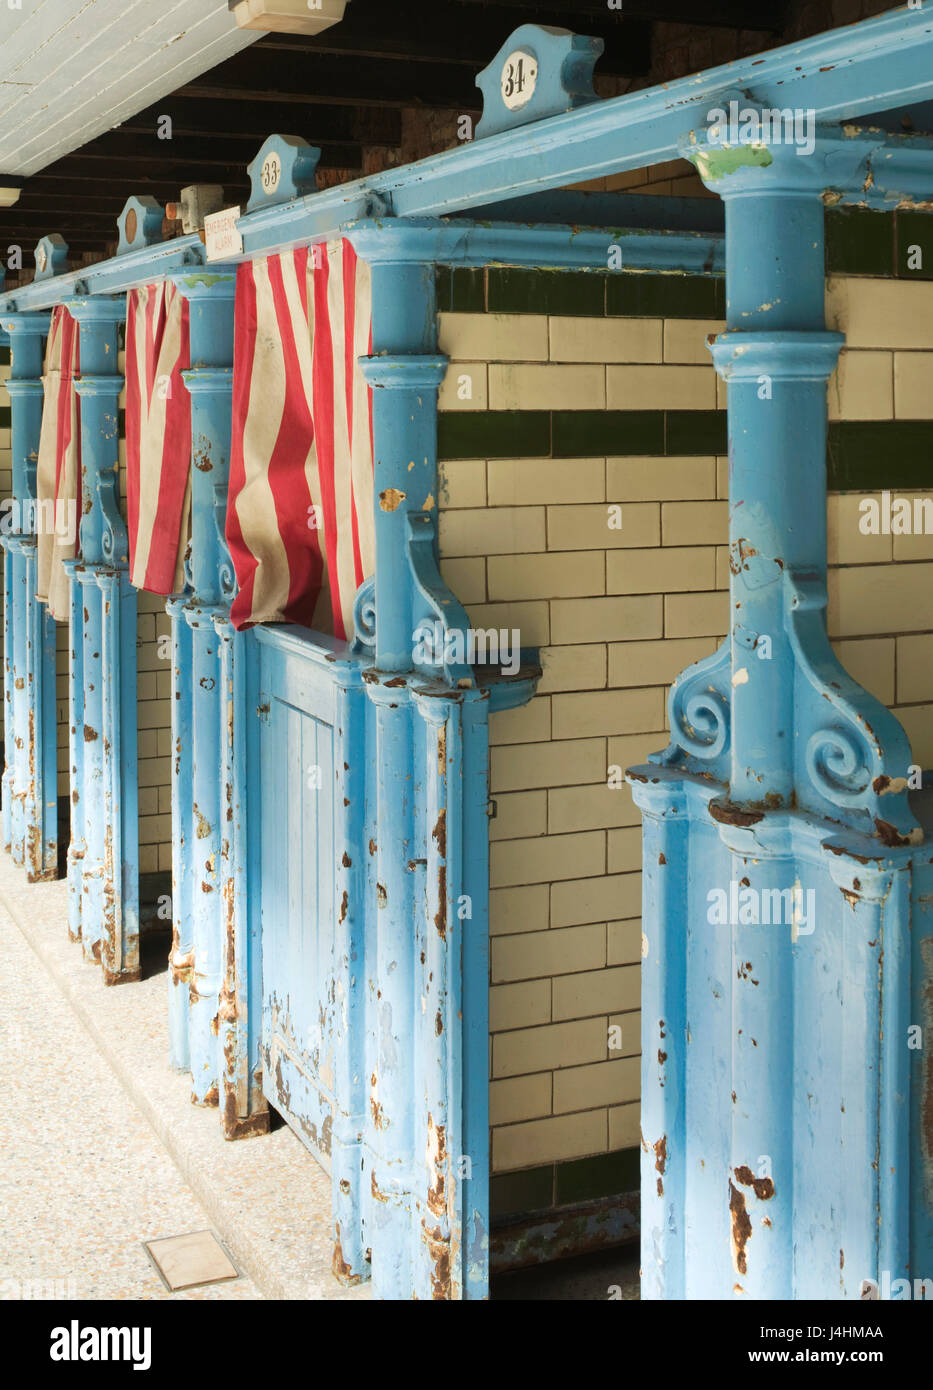 Changing cubicle. Victoria Baths, Manchester, United Kingdom. Architect: Henry Price, 1906. - Stock Image